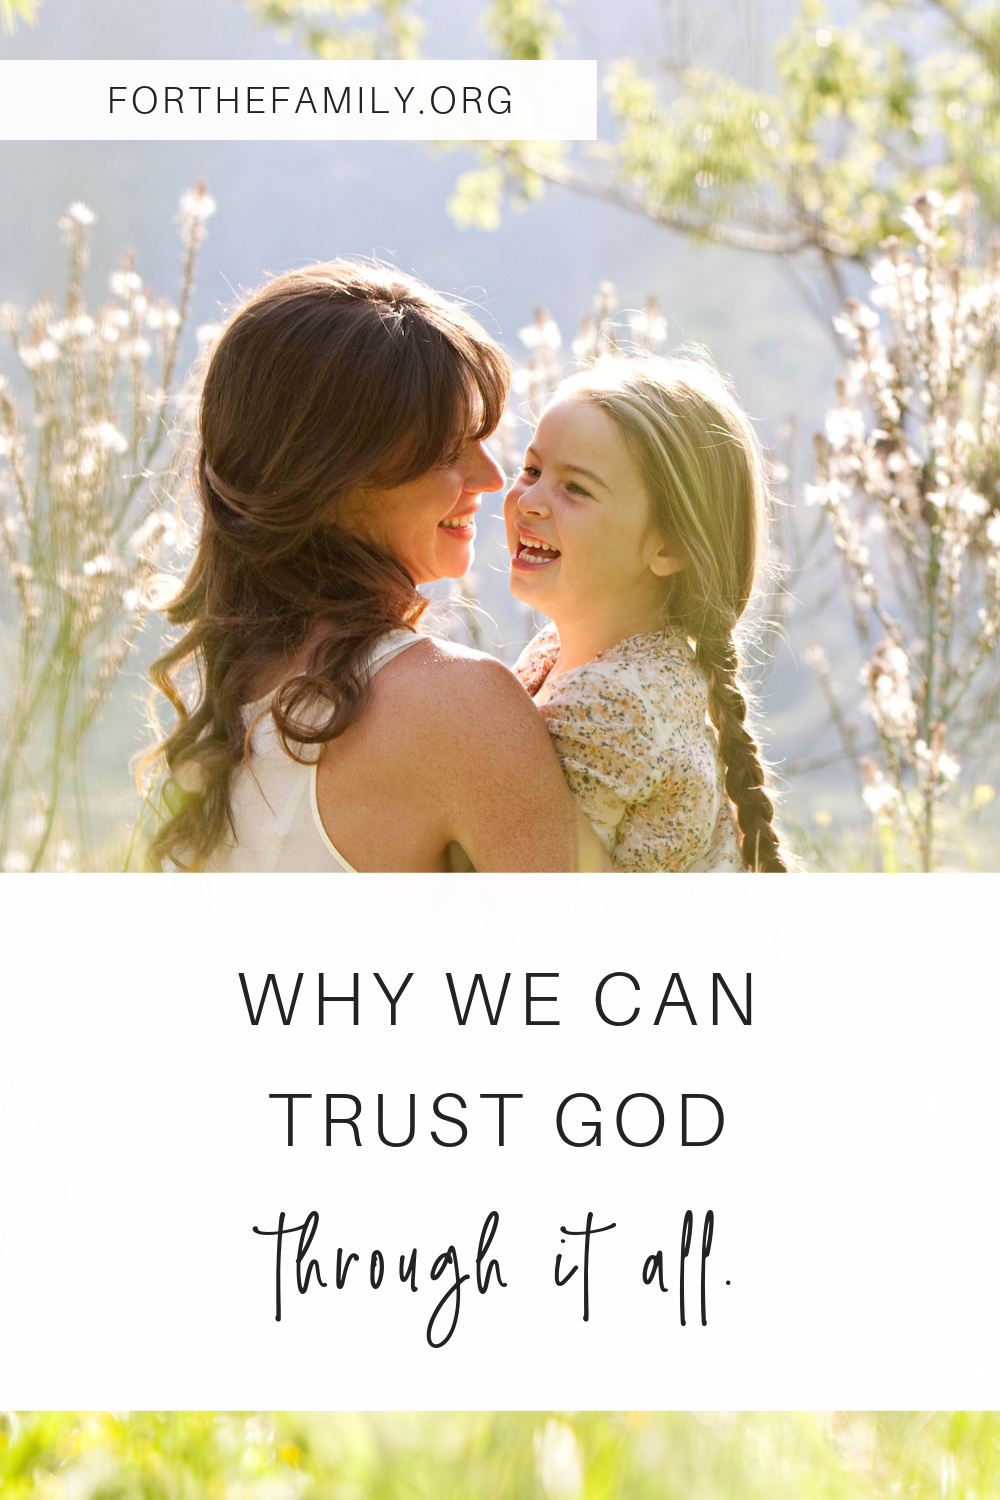 Do you struggle to trust God with what He has in store for your life? Its not always easy to trust his goodness and plan, sometimes we'd rather control it all- but that never works out well. Learn how we can rest in God through it all!